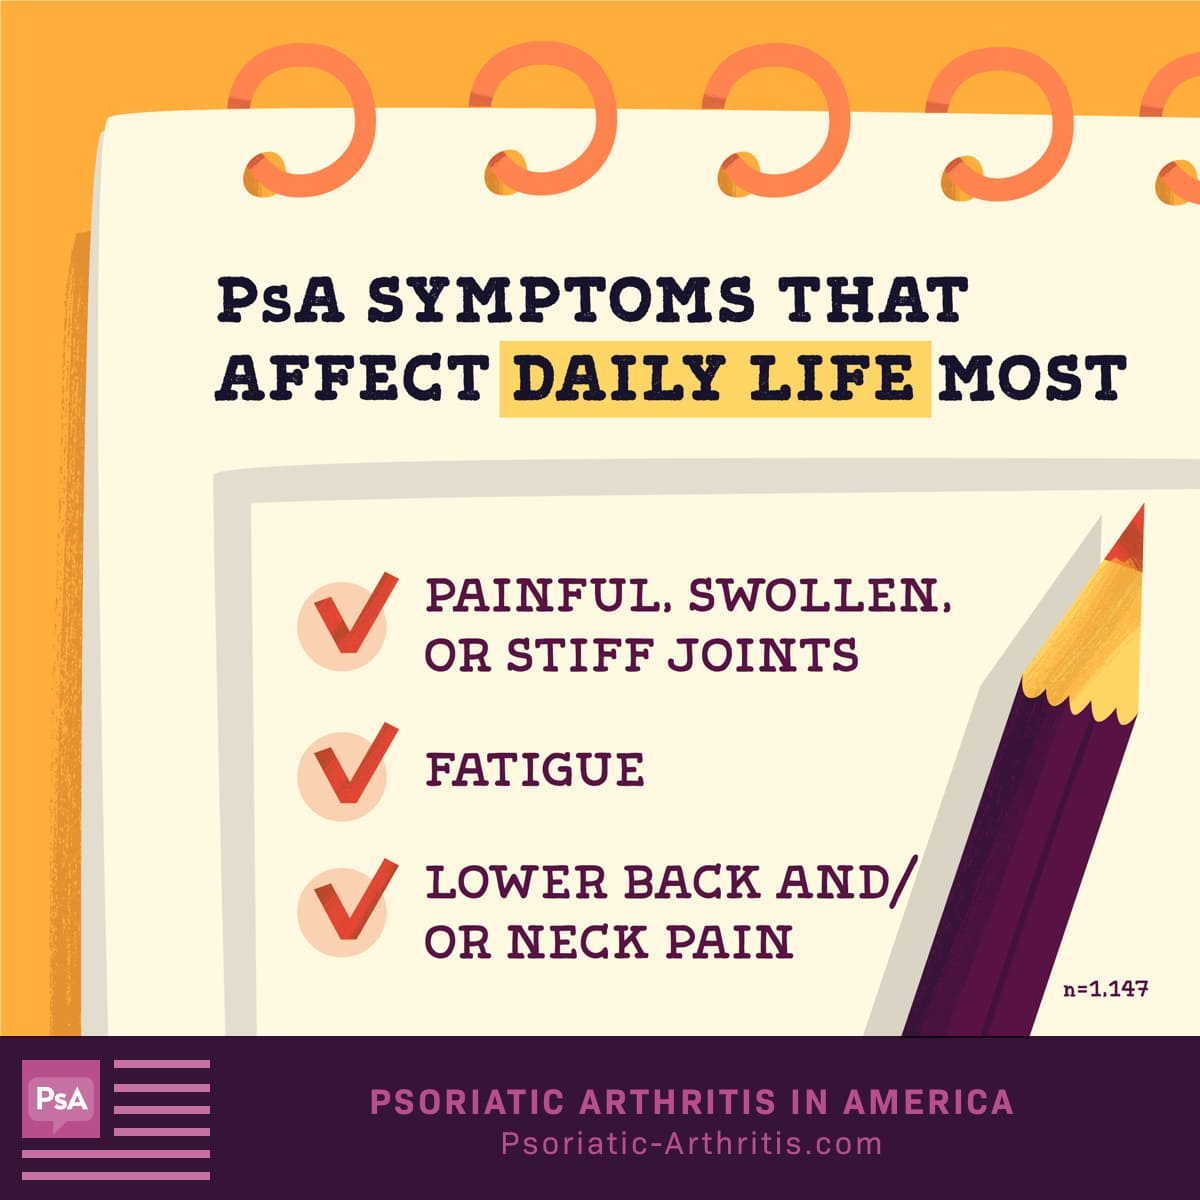 Painful, swollen and stiff joints, fatigue and lower back and/or neck pain are psoriatic arthritis symptoms that affect daily life the most.